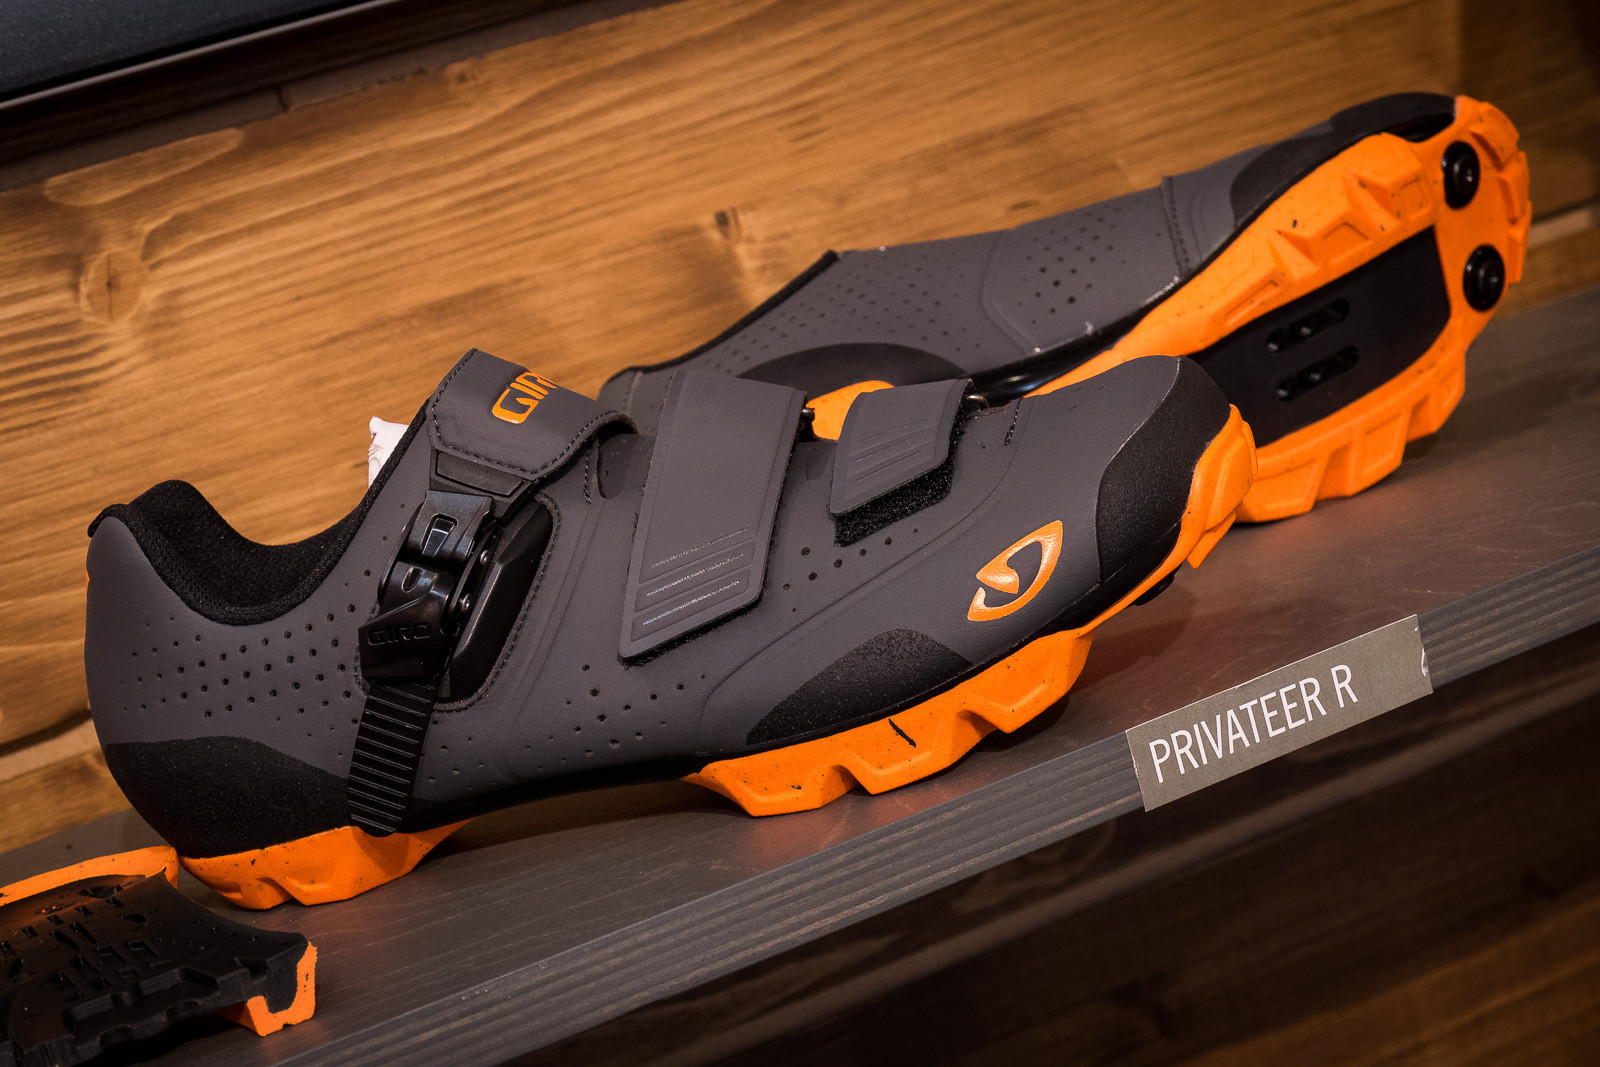 Giro Privateer R and Terraduro Shoes - 2016 Mountain Bike Apparel & Protection at Eurobike - Mountain Biking Pictures - Vital MTB